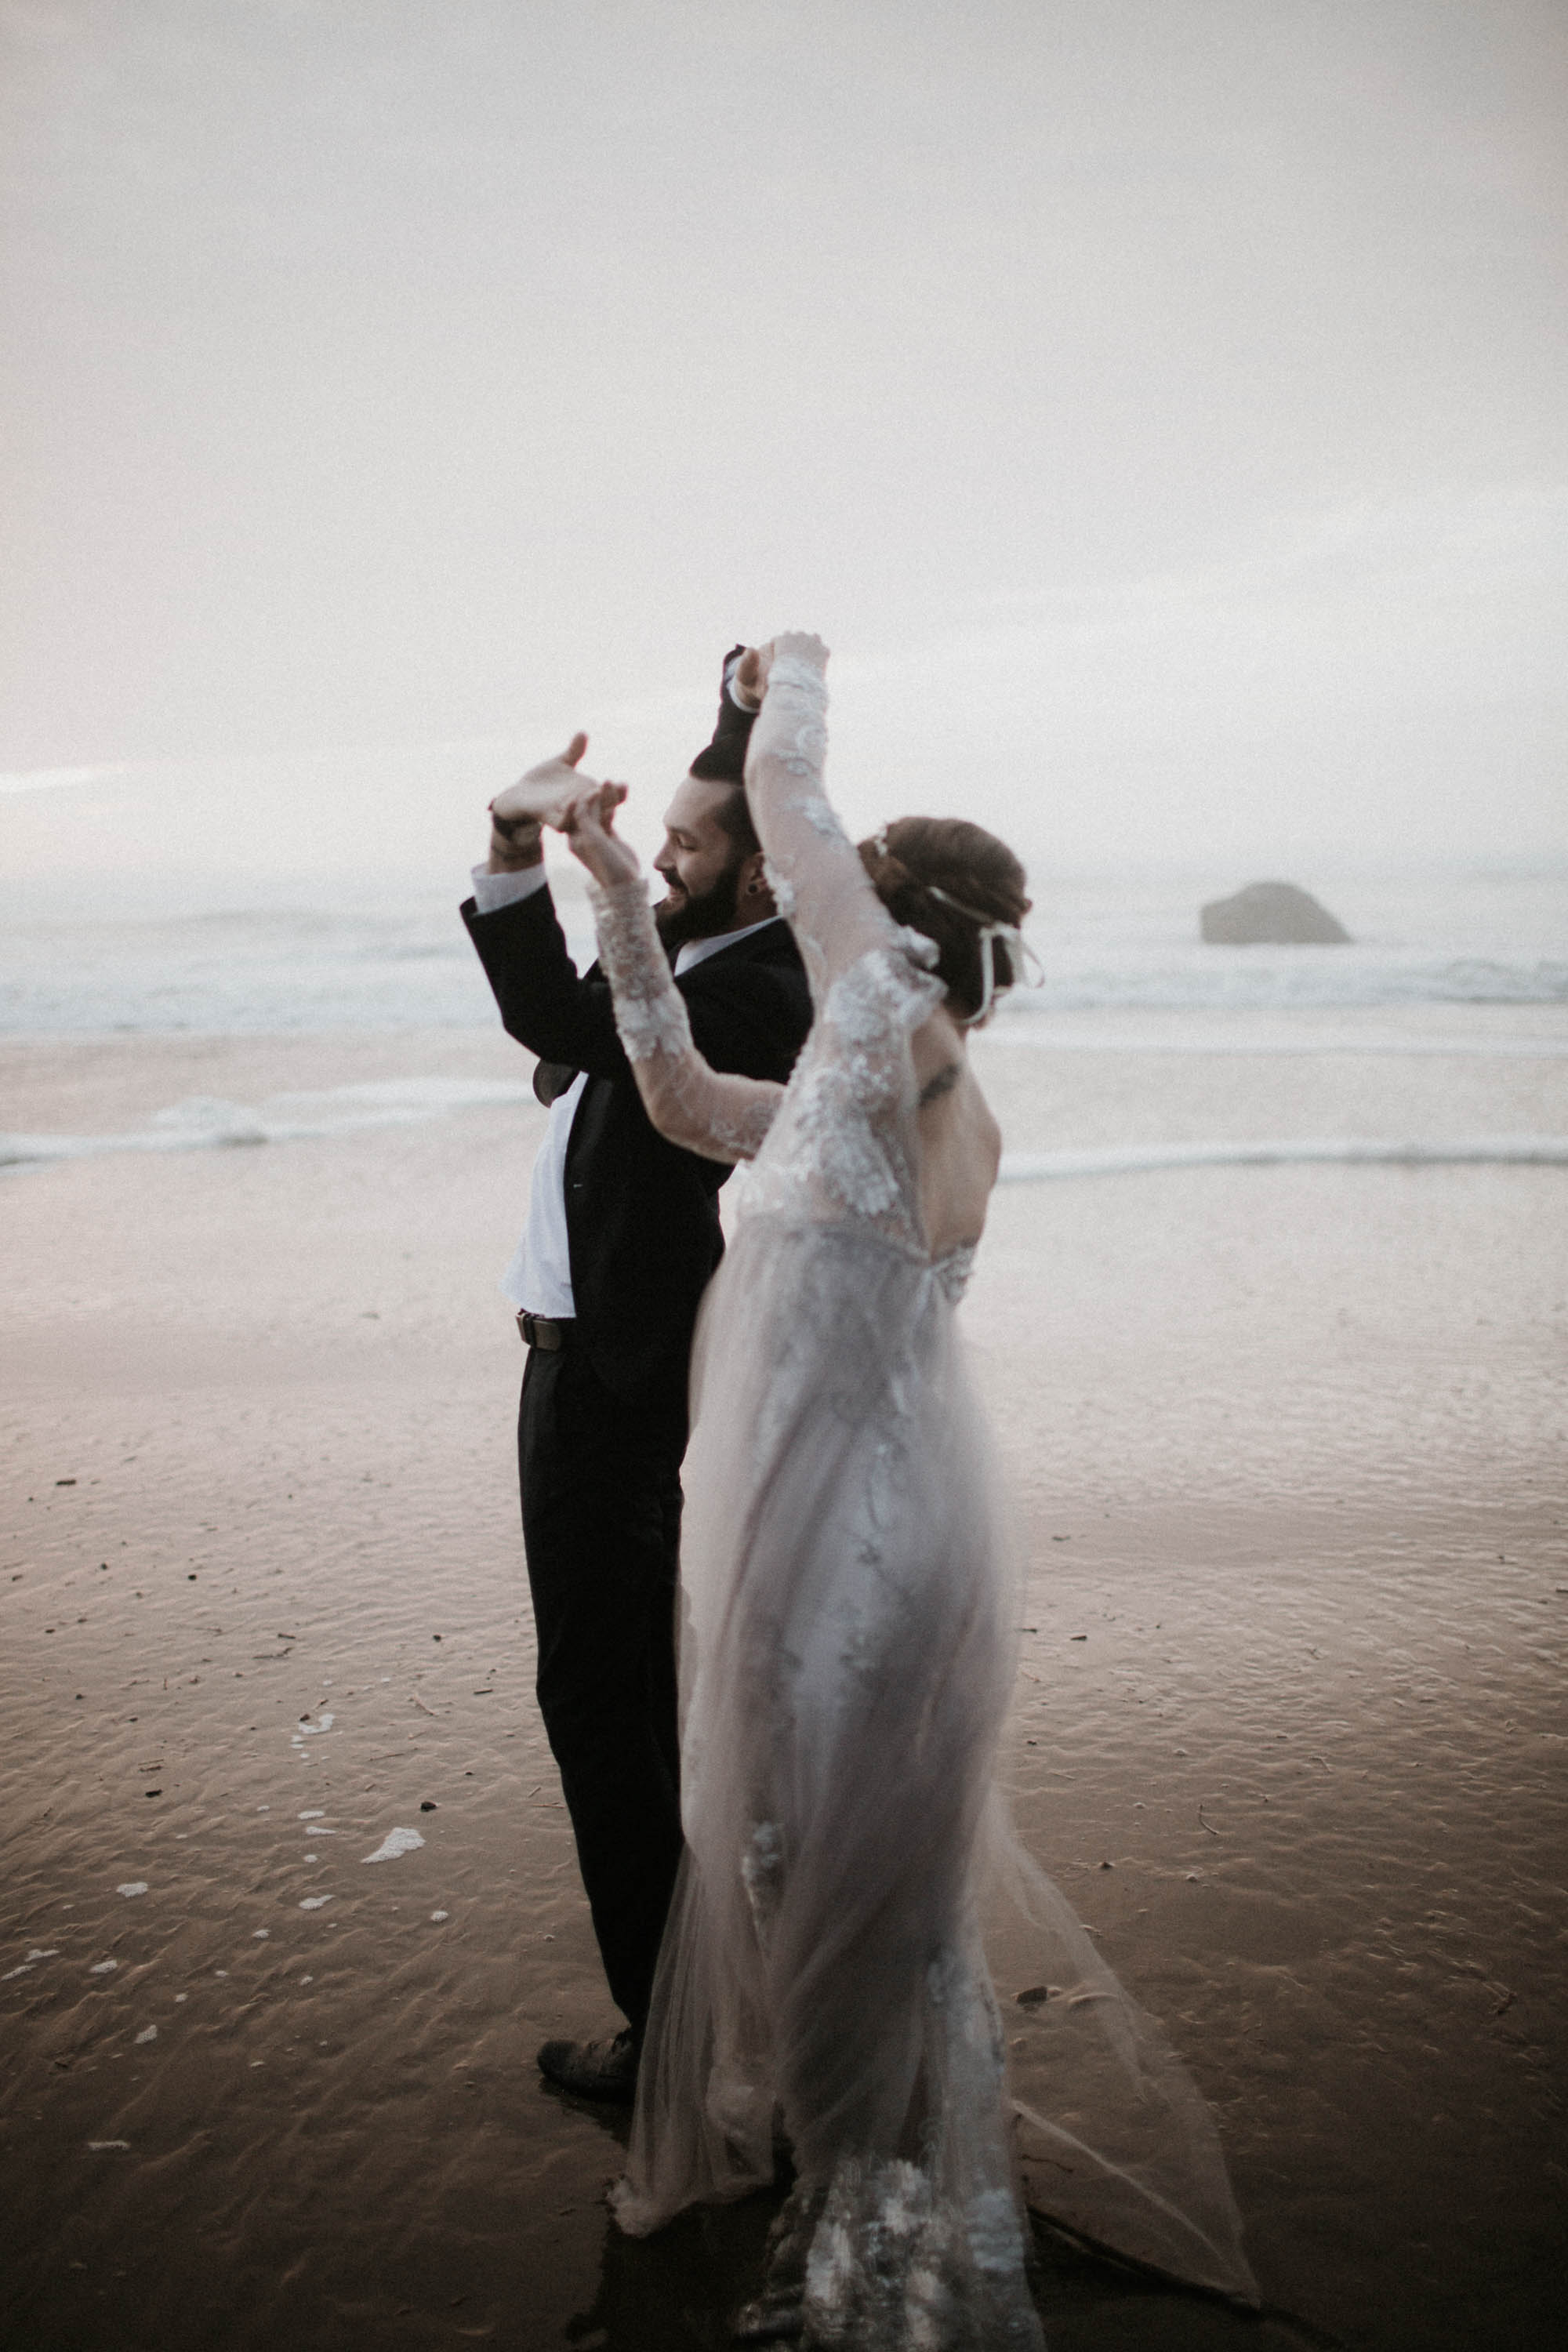 canonbeach_elopment_weddingphotographer-64.jpg